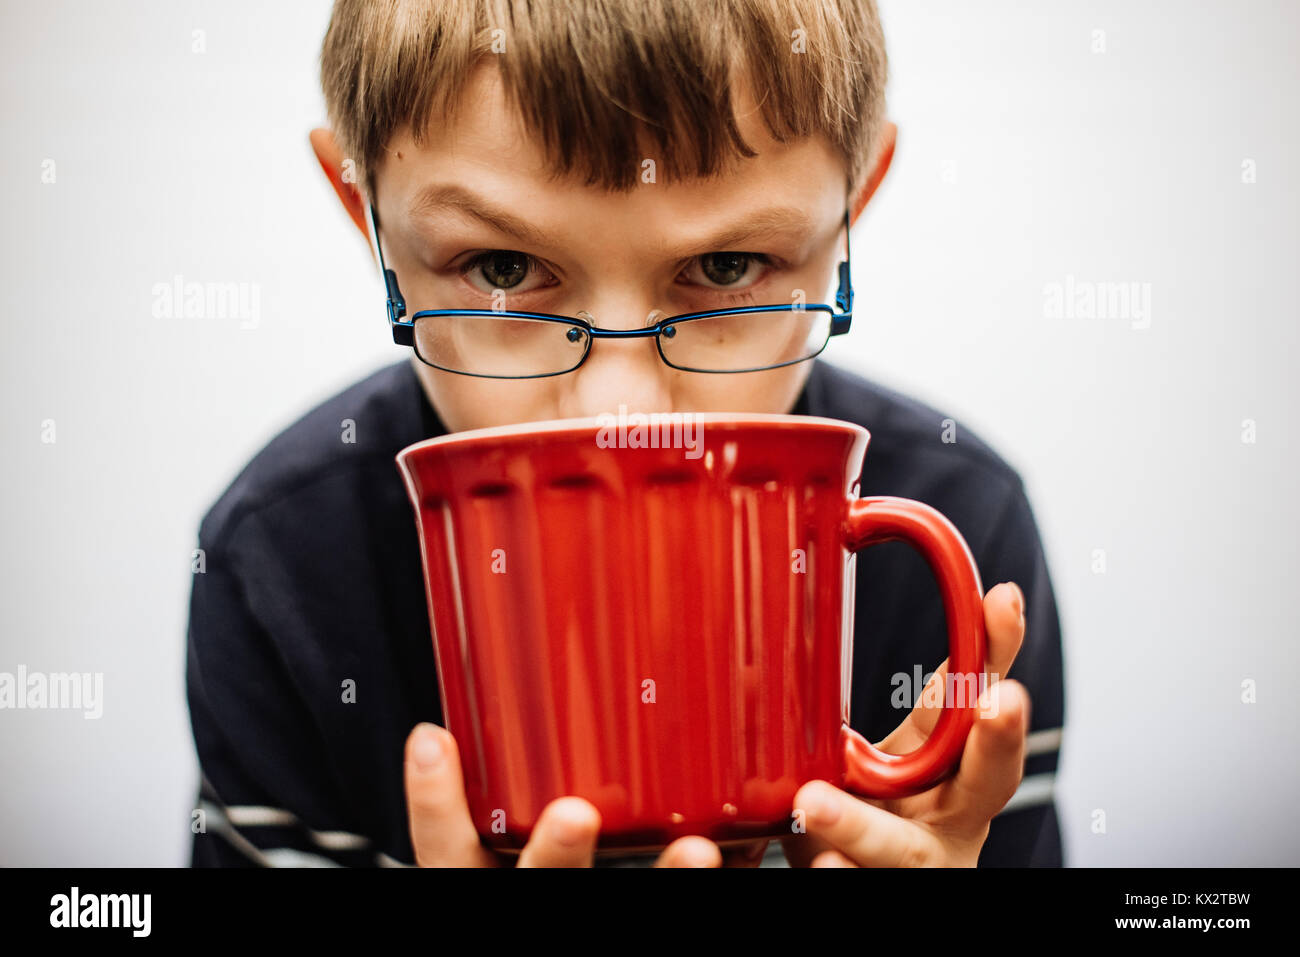 A 11 year old boy wearing glasses looking over the rim of a red cup of tea. - Stock Image